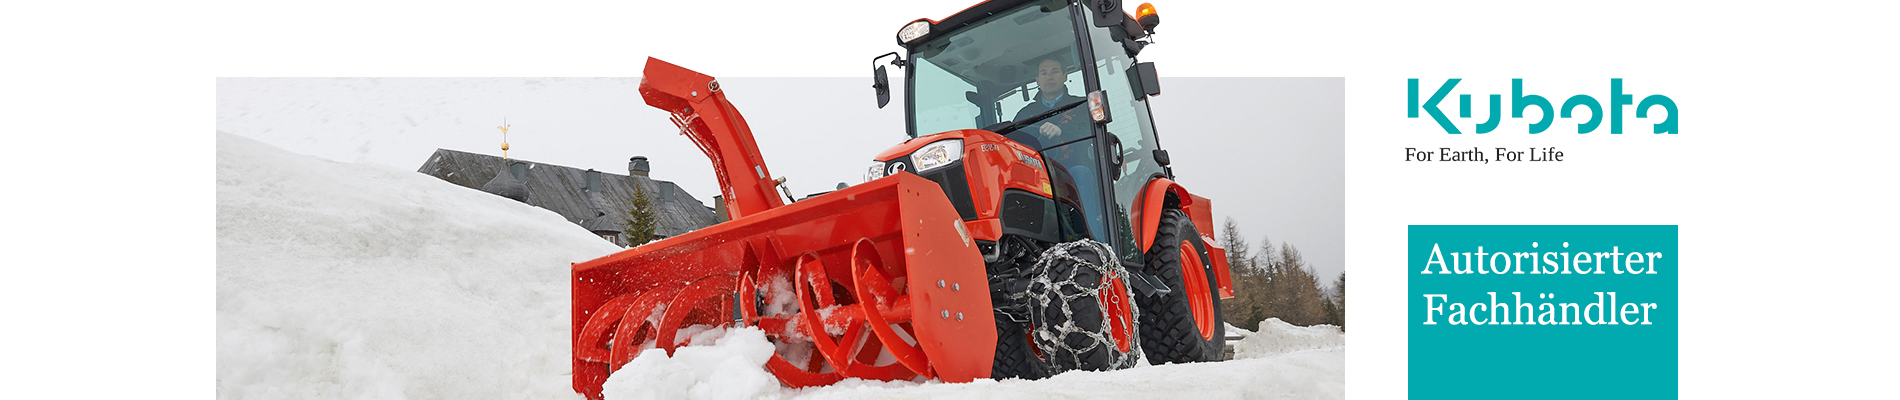 Kubota-2-Header-gross